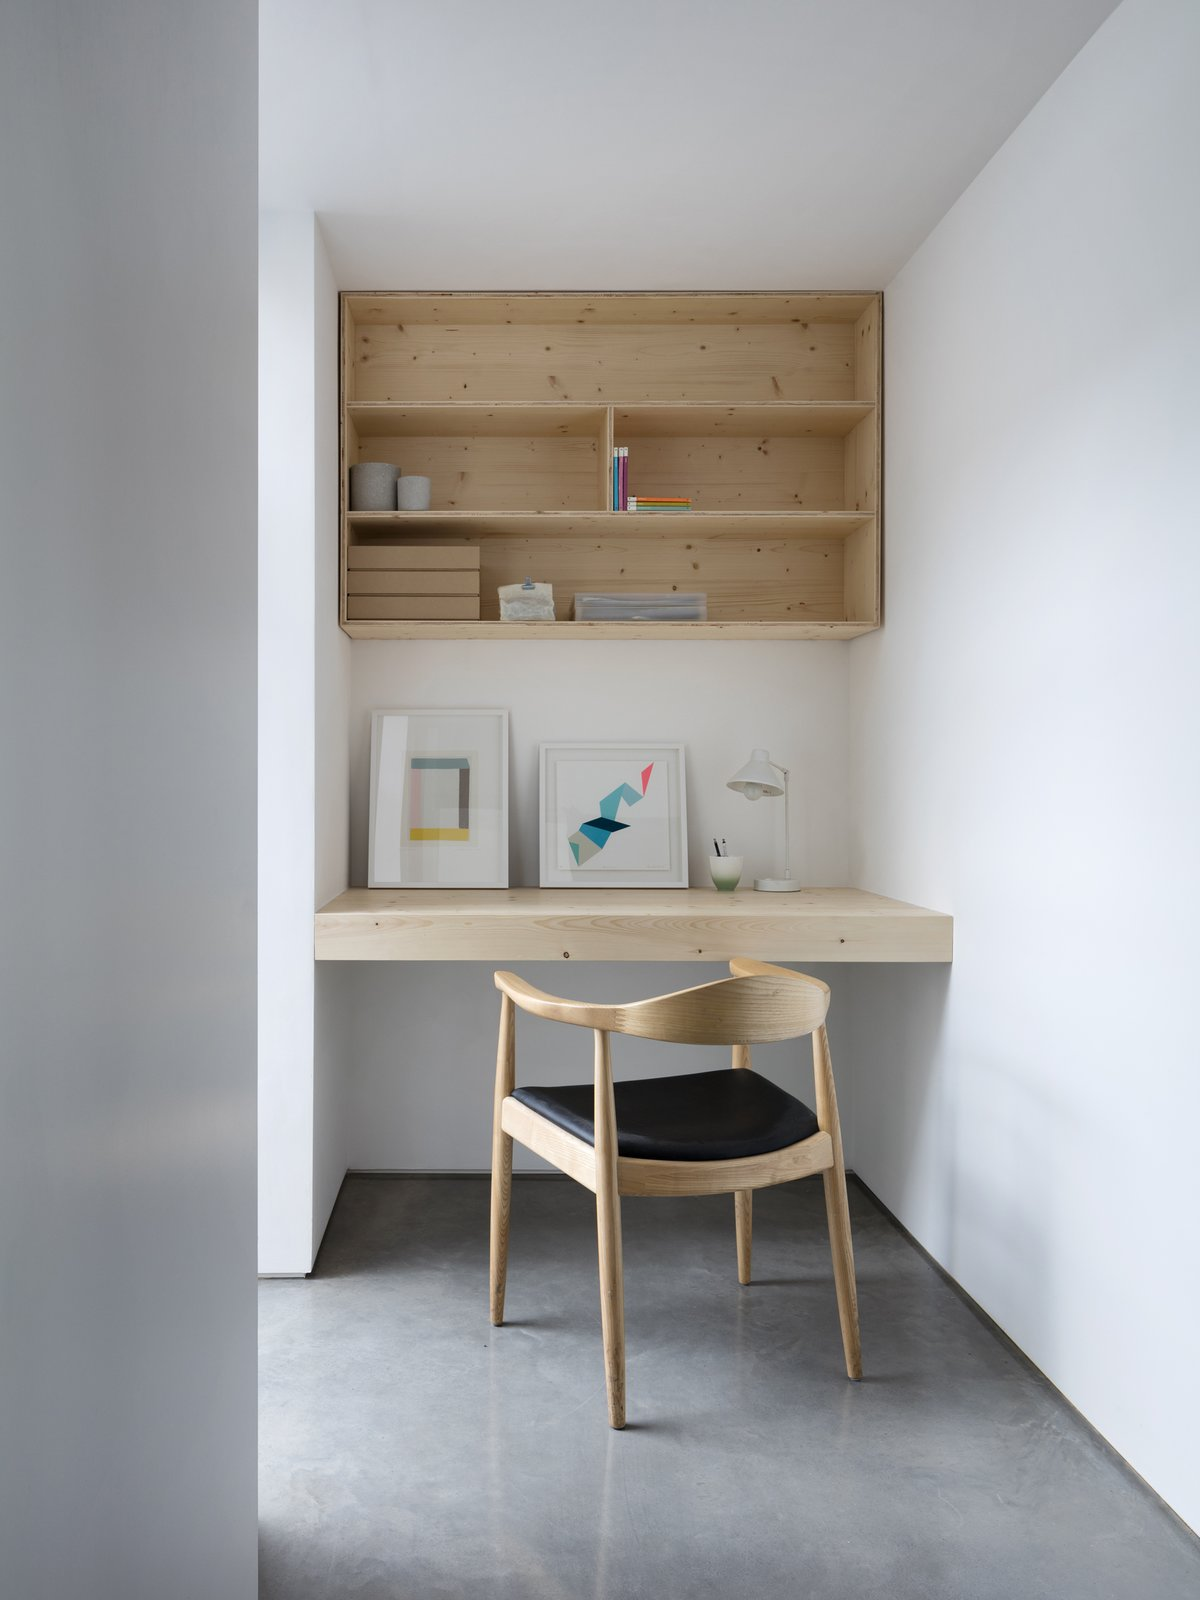 Office, Chair, Desk, Concrete Floor, and Shelves Custom built-ins provide functionality in every nook.   Photo 10 of 12 in A Forgotten Warehouse Is Reborn Into a Light-Filled London Home